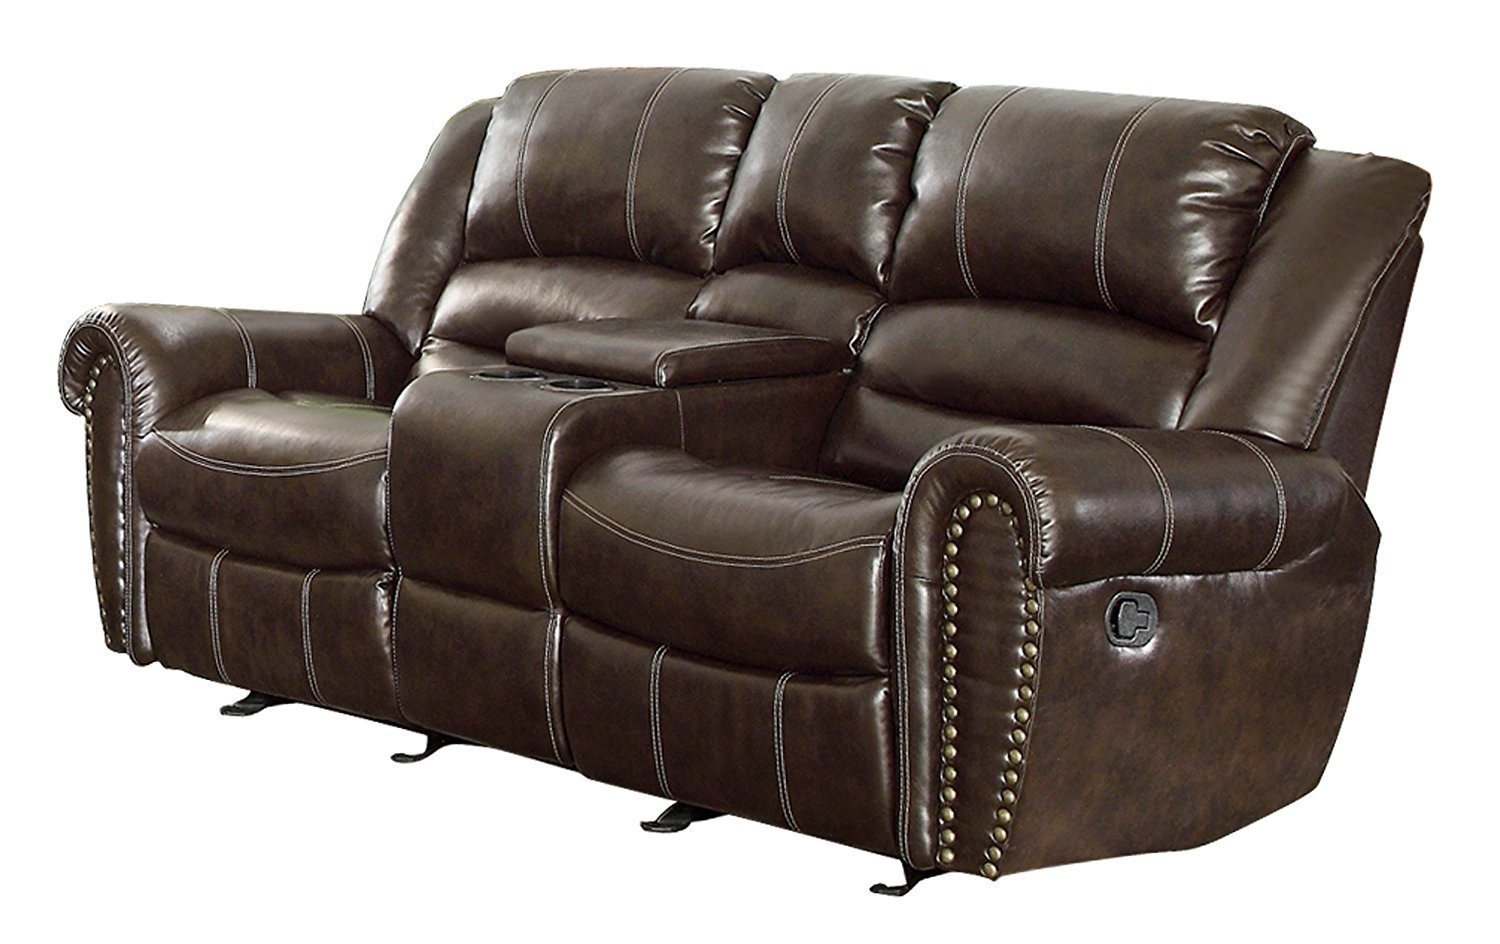 Homelegance 9668brw 2 Double Glider Reclining Loveseat